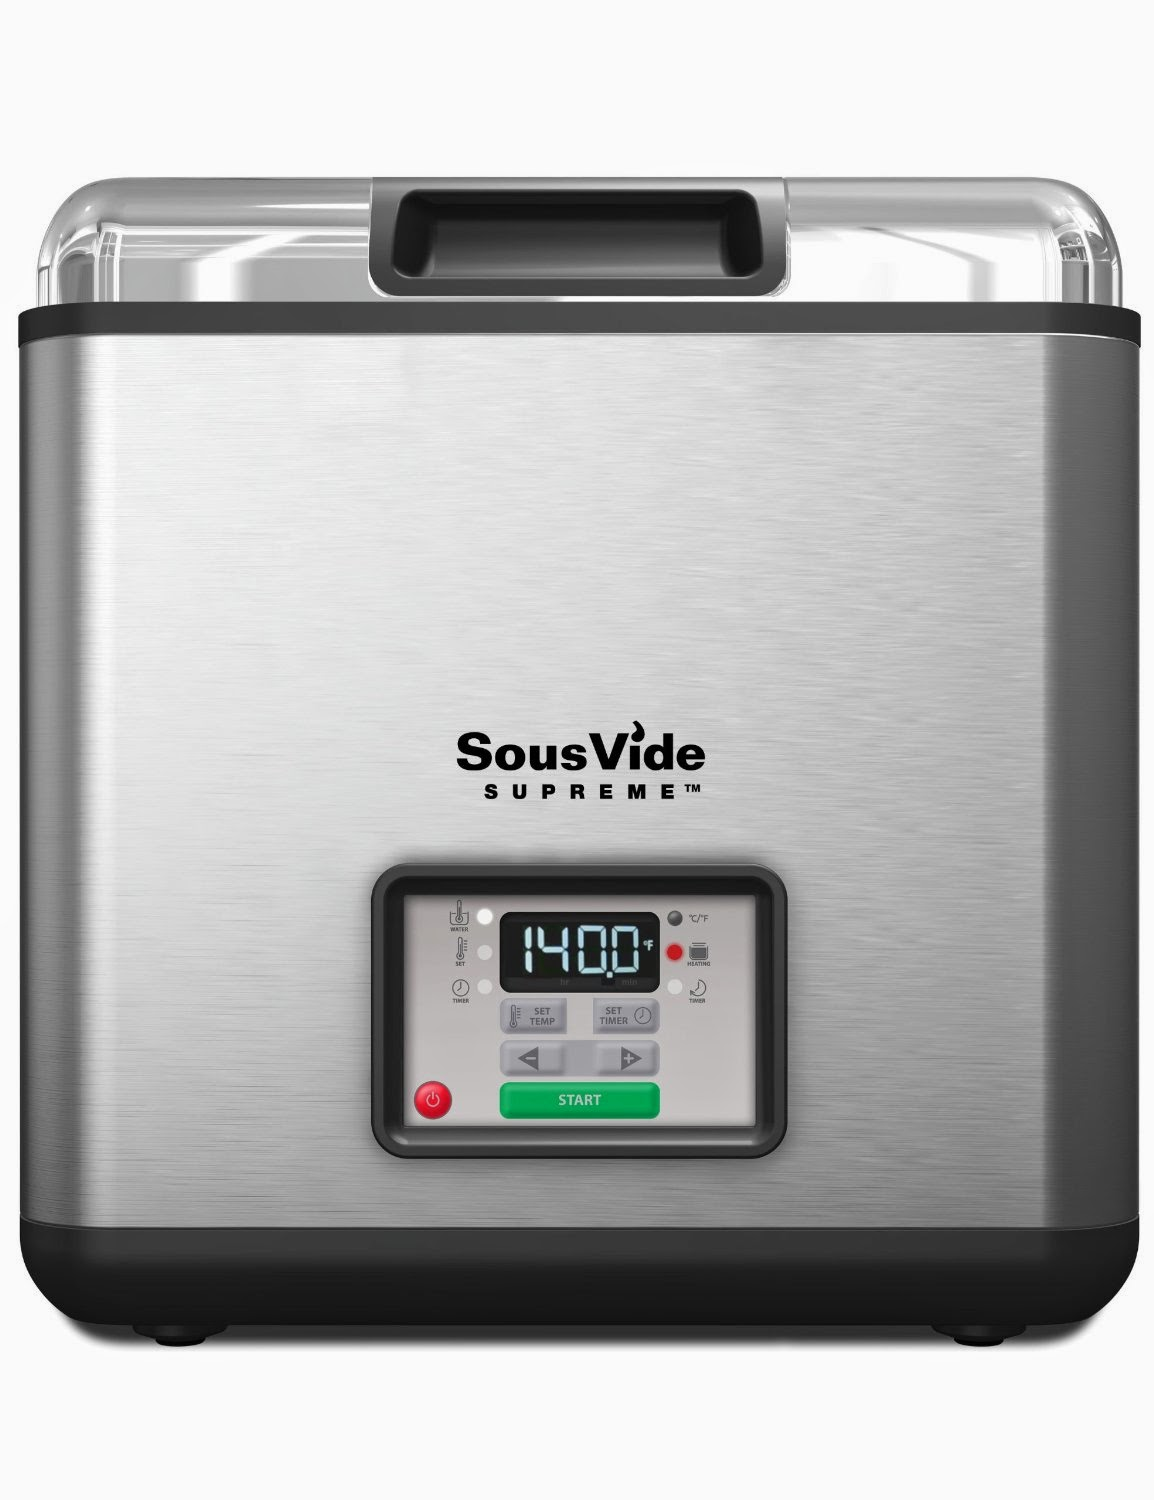 Sous Vide Supreme SVK-00001 Water Oven, stainless steel, 11.2 liters, review, for nutritious tastier meals